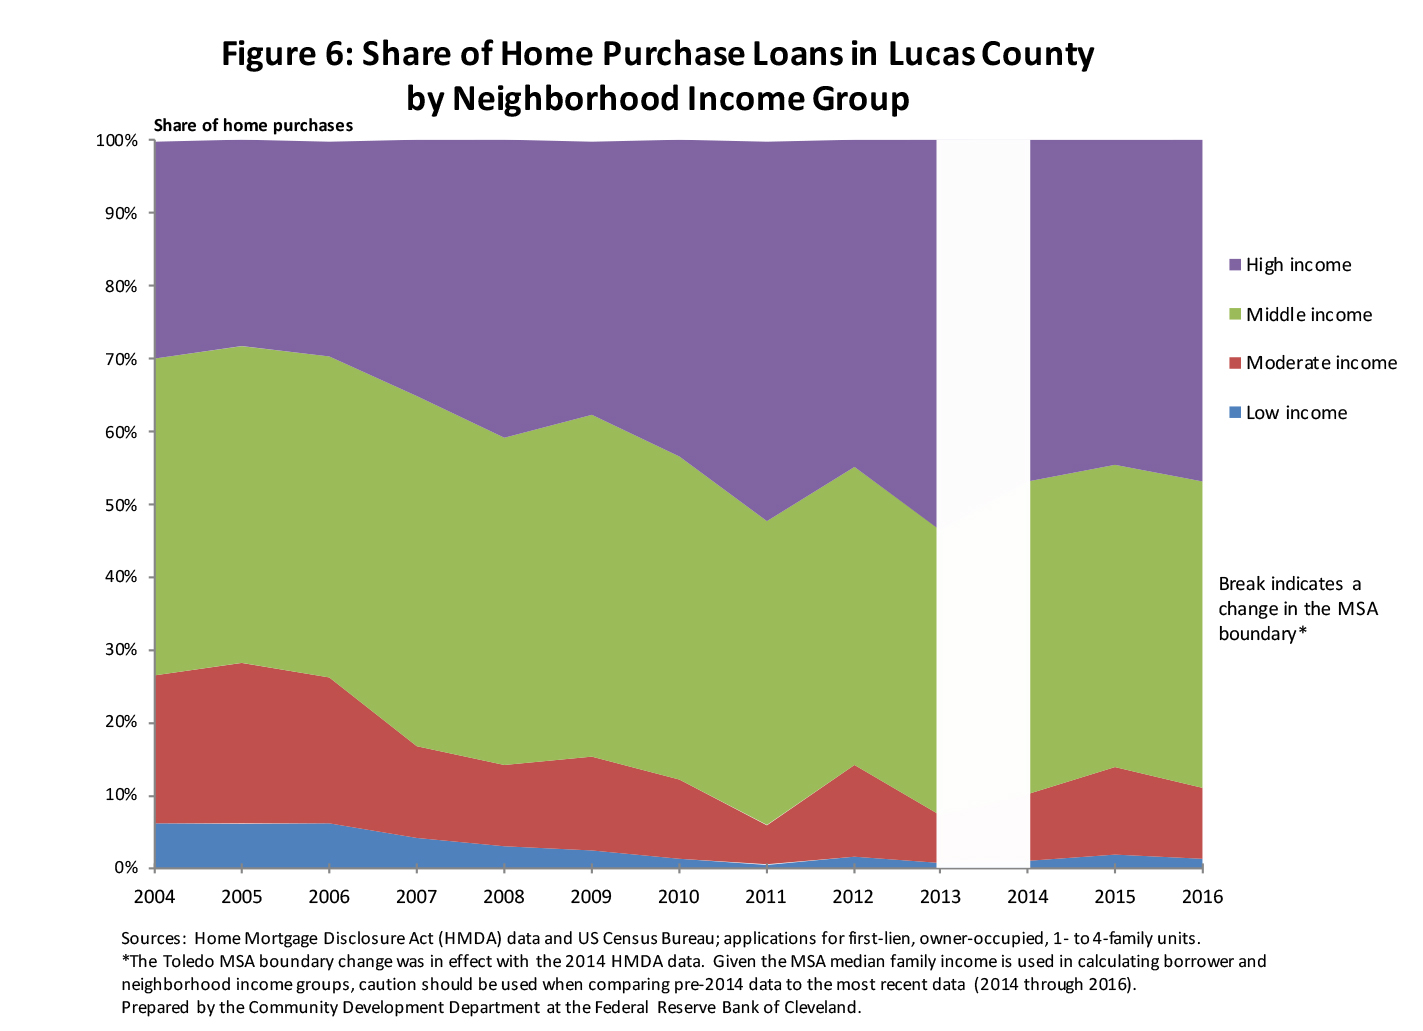 Figure 6: Share of Home Purchase Loans in Lucas County by Neighborhoood Income Group